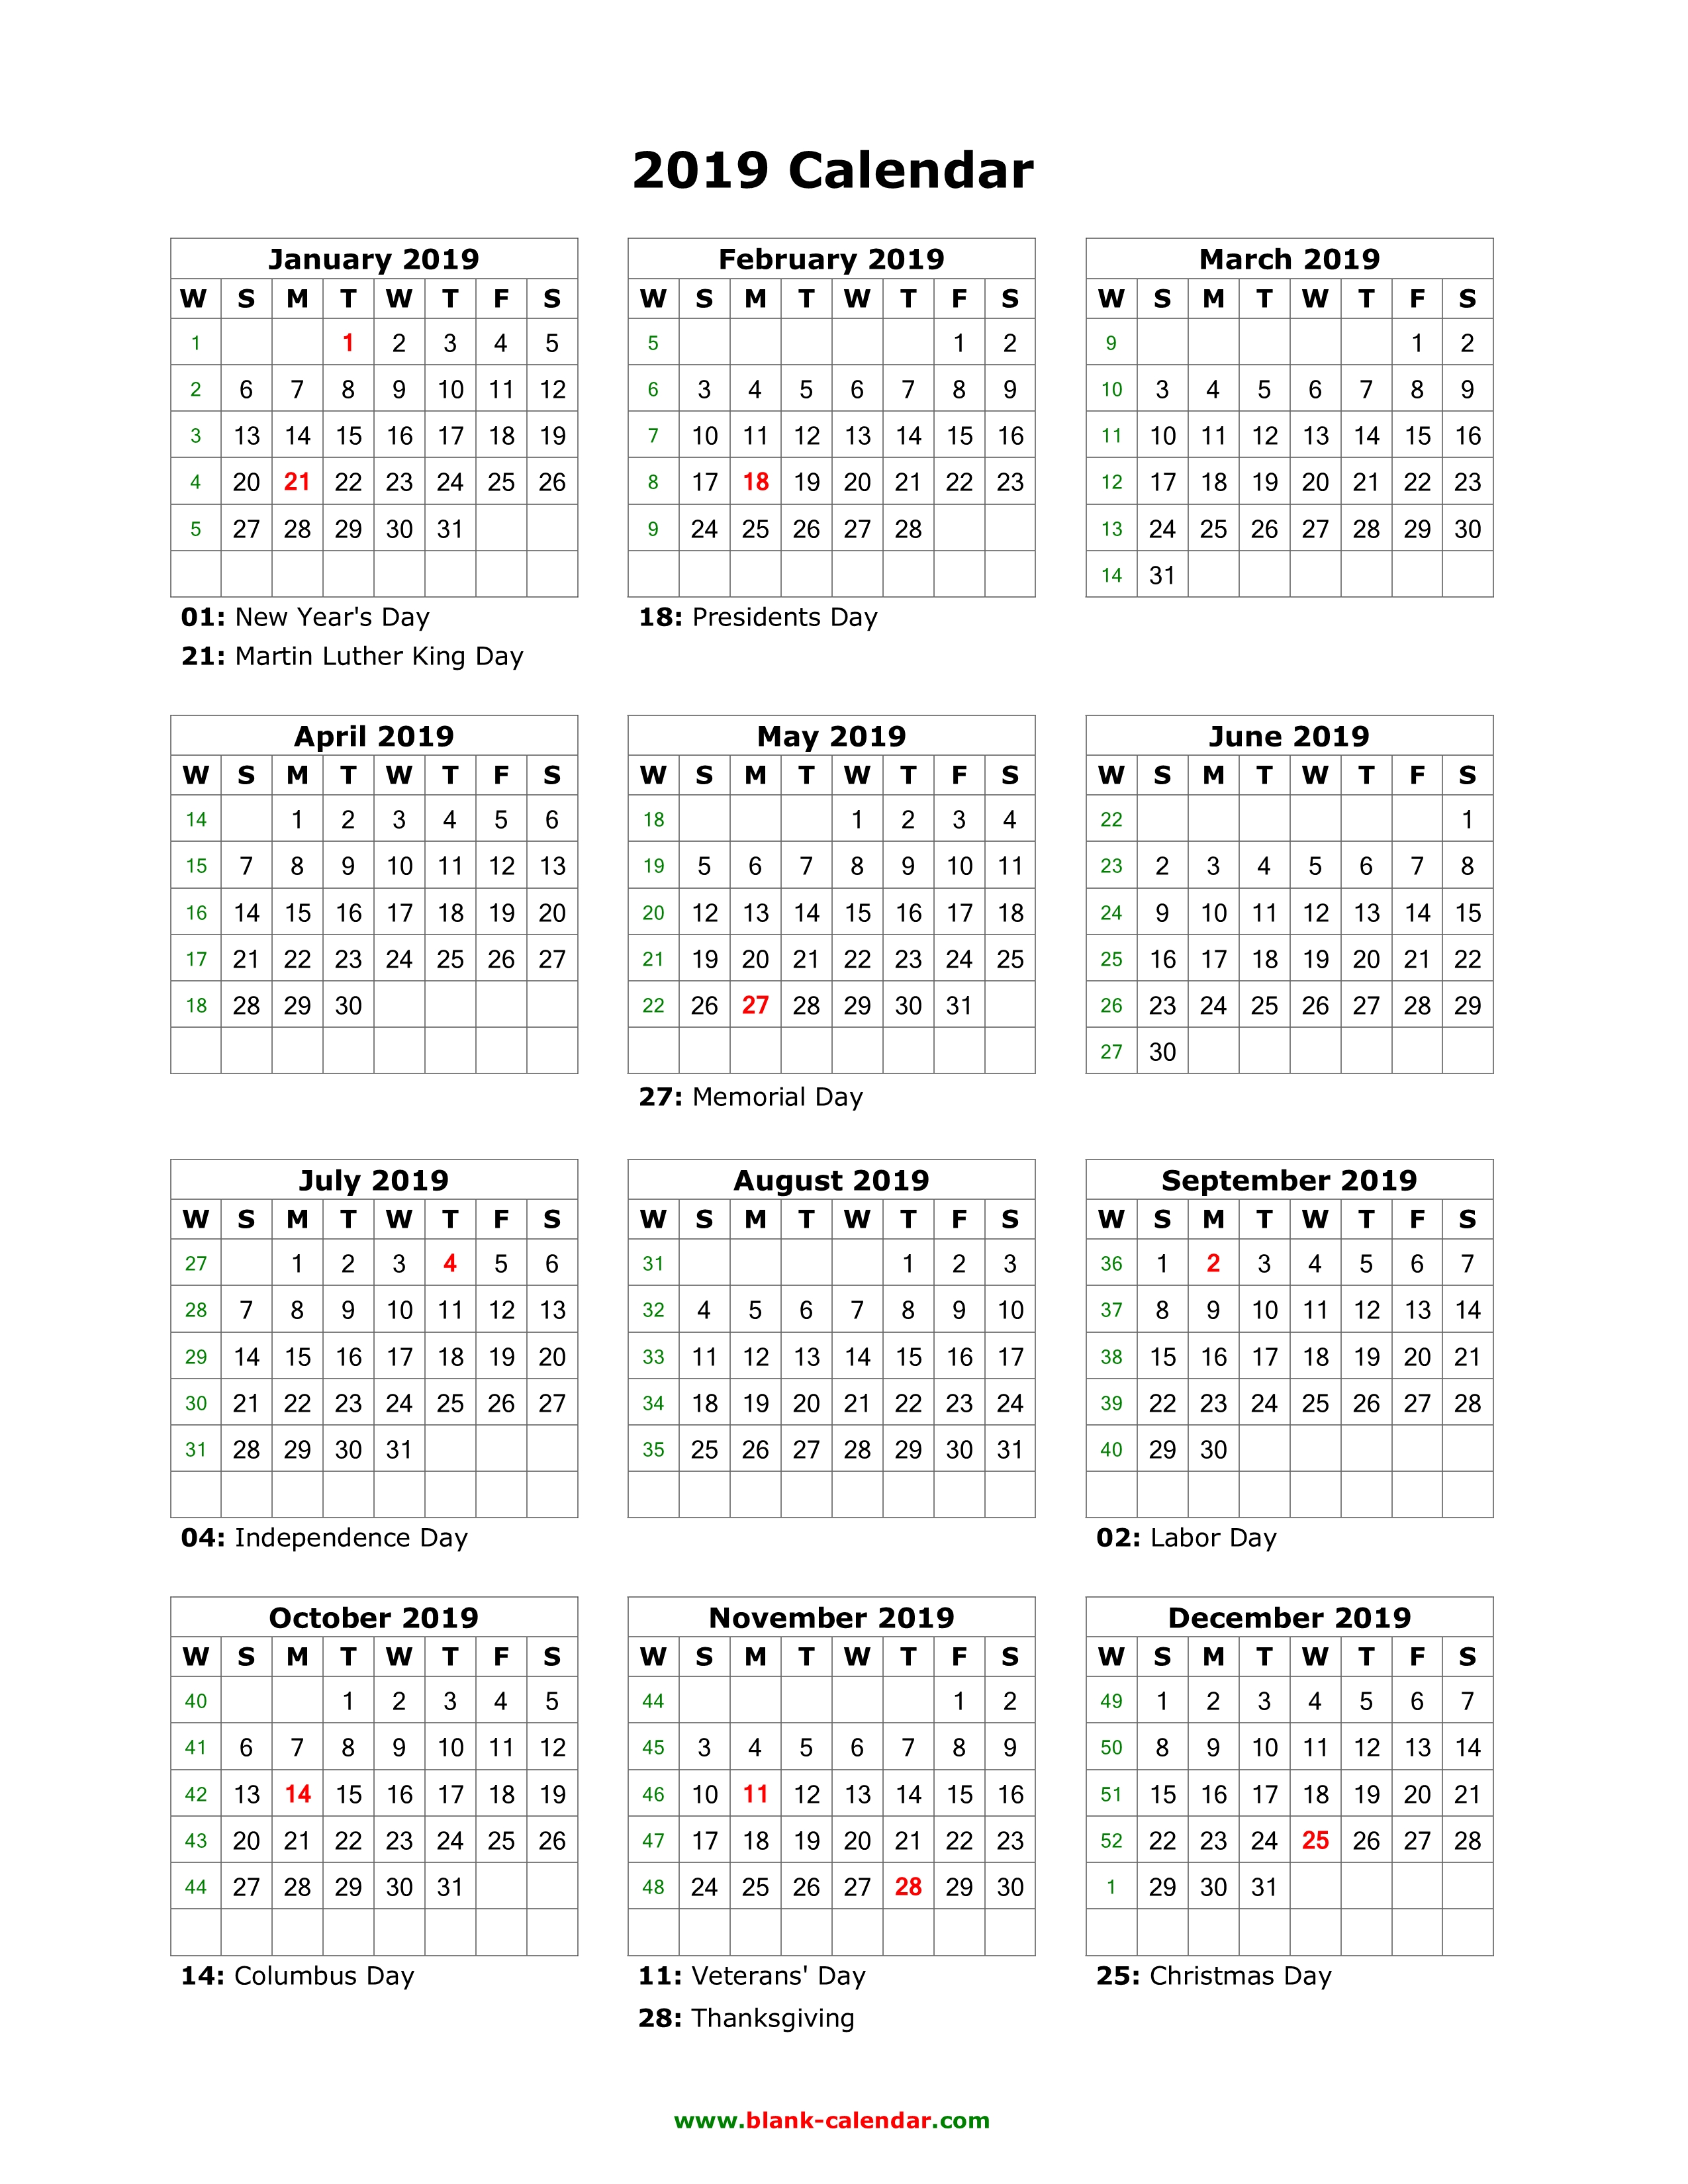 blank calendar 2019 us holidays one page vertical